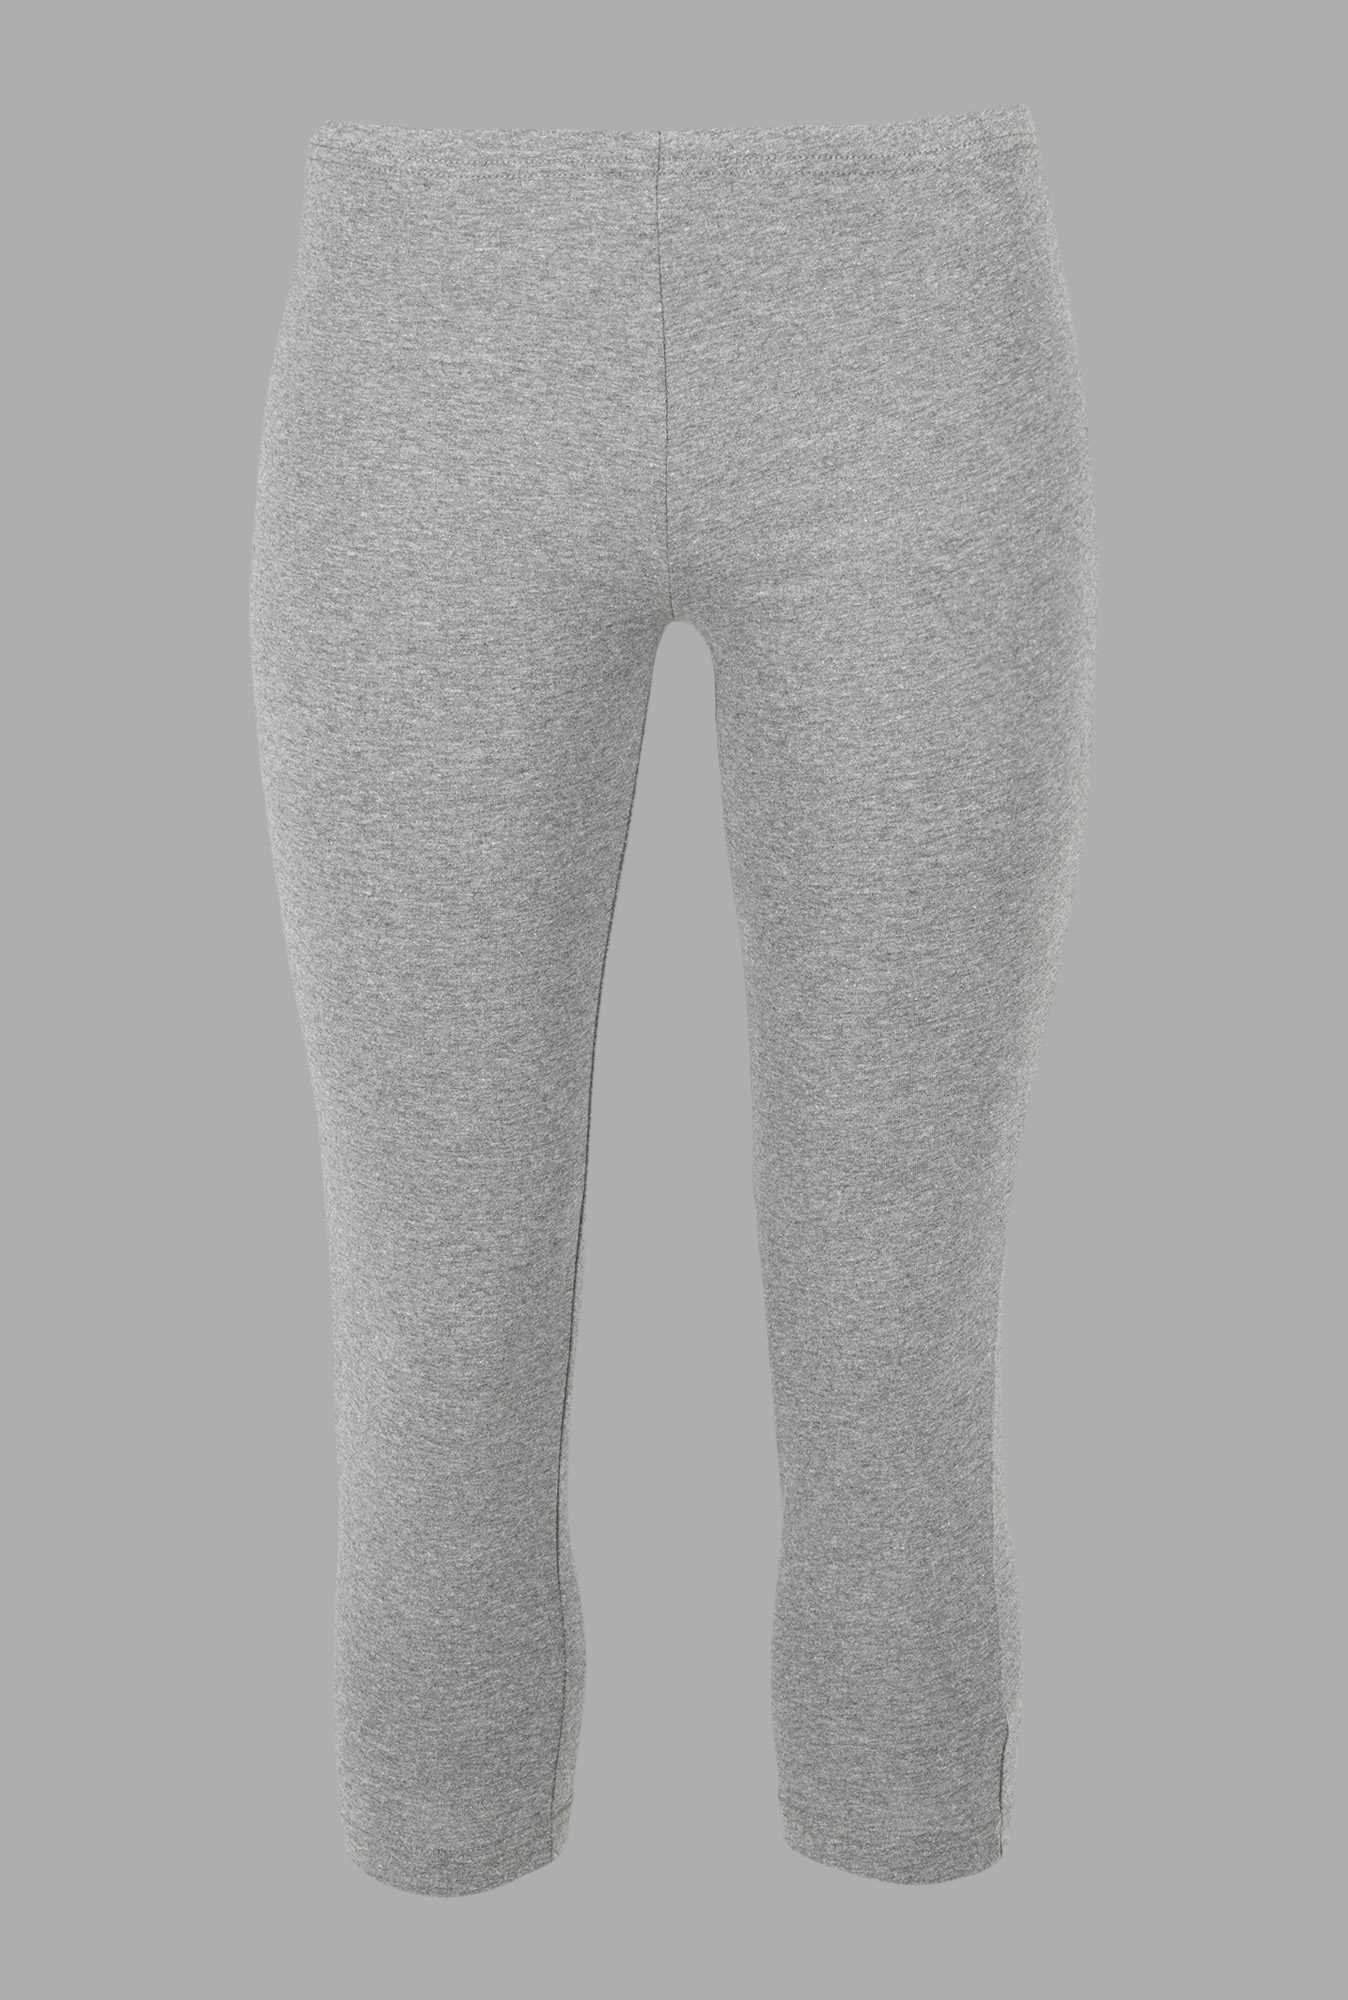 Doone Grey Training Capri